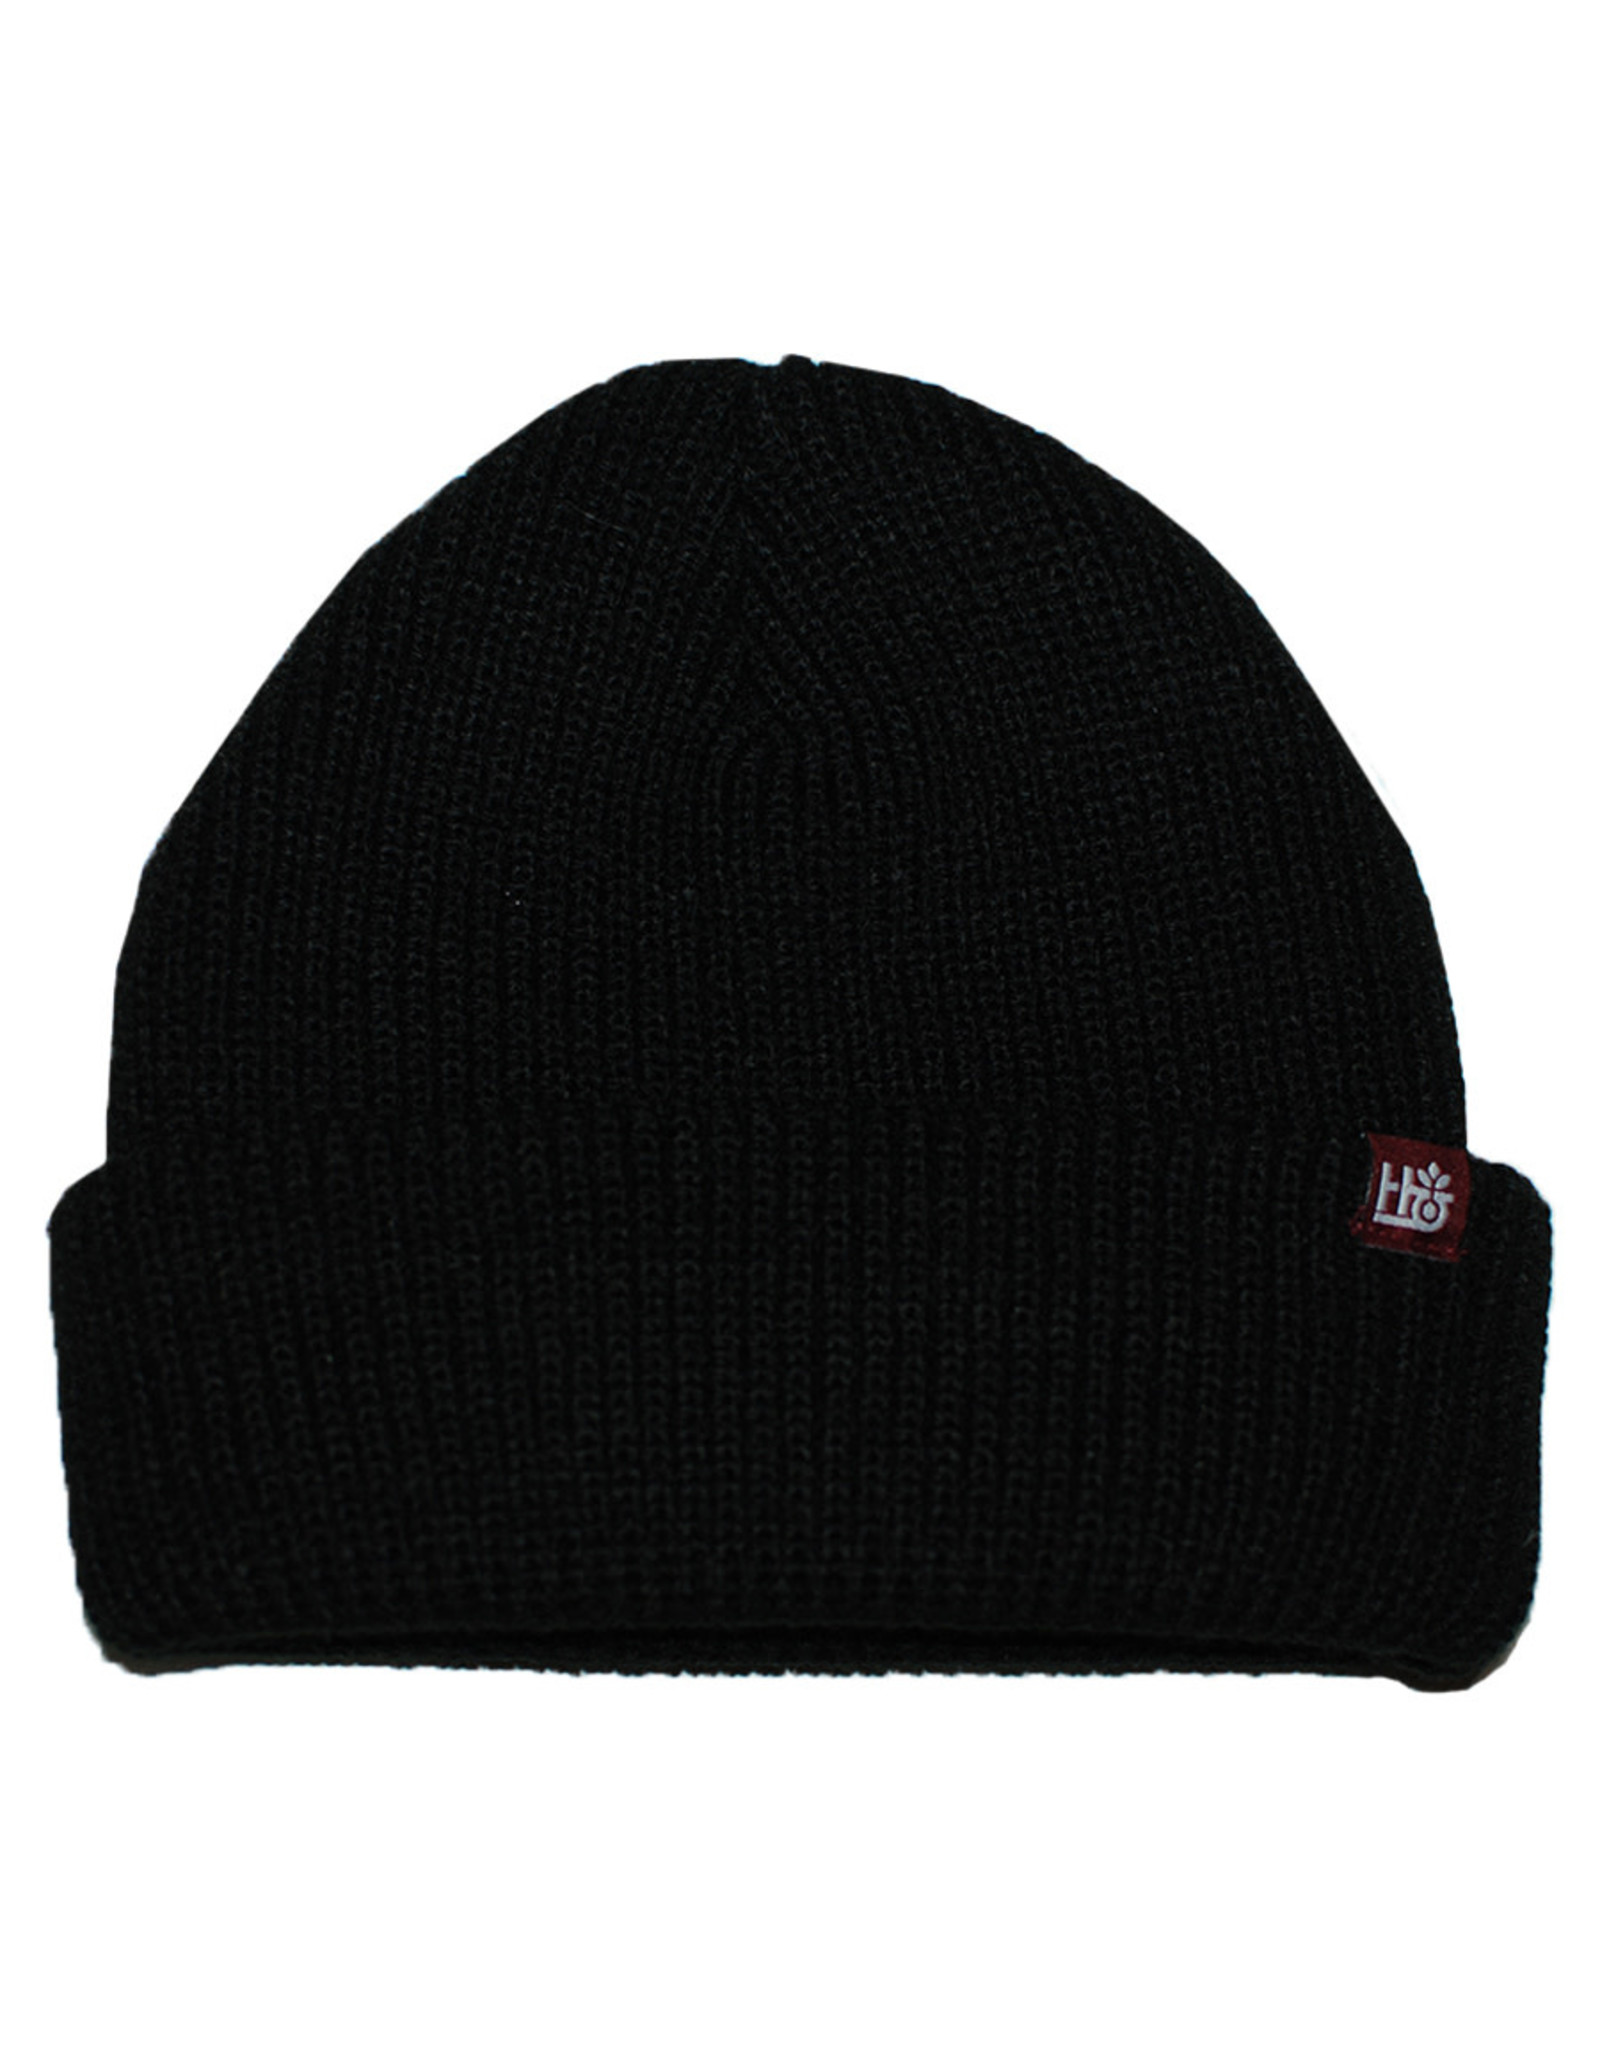 Habitat Habitat Beanie Field Essentials (Black)